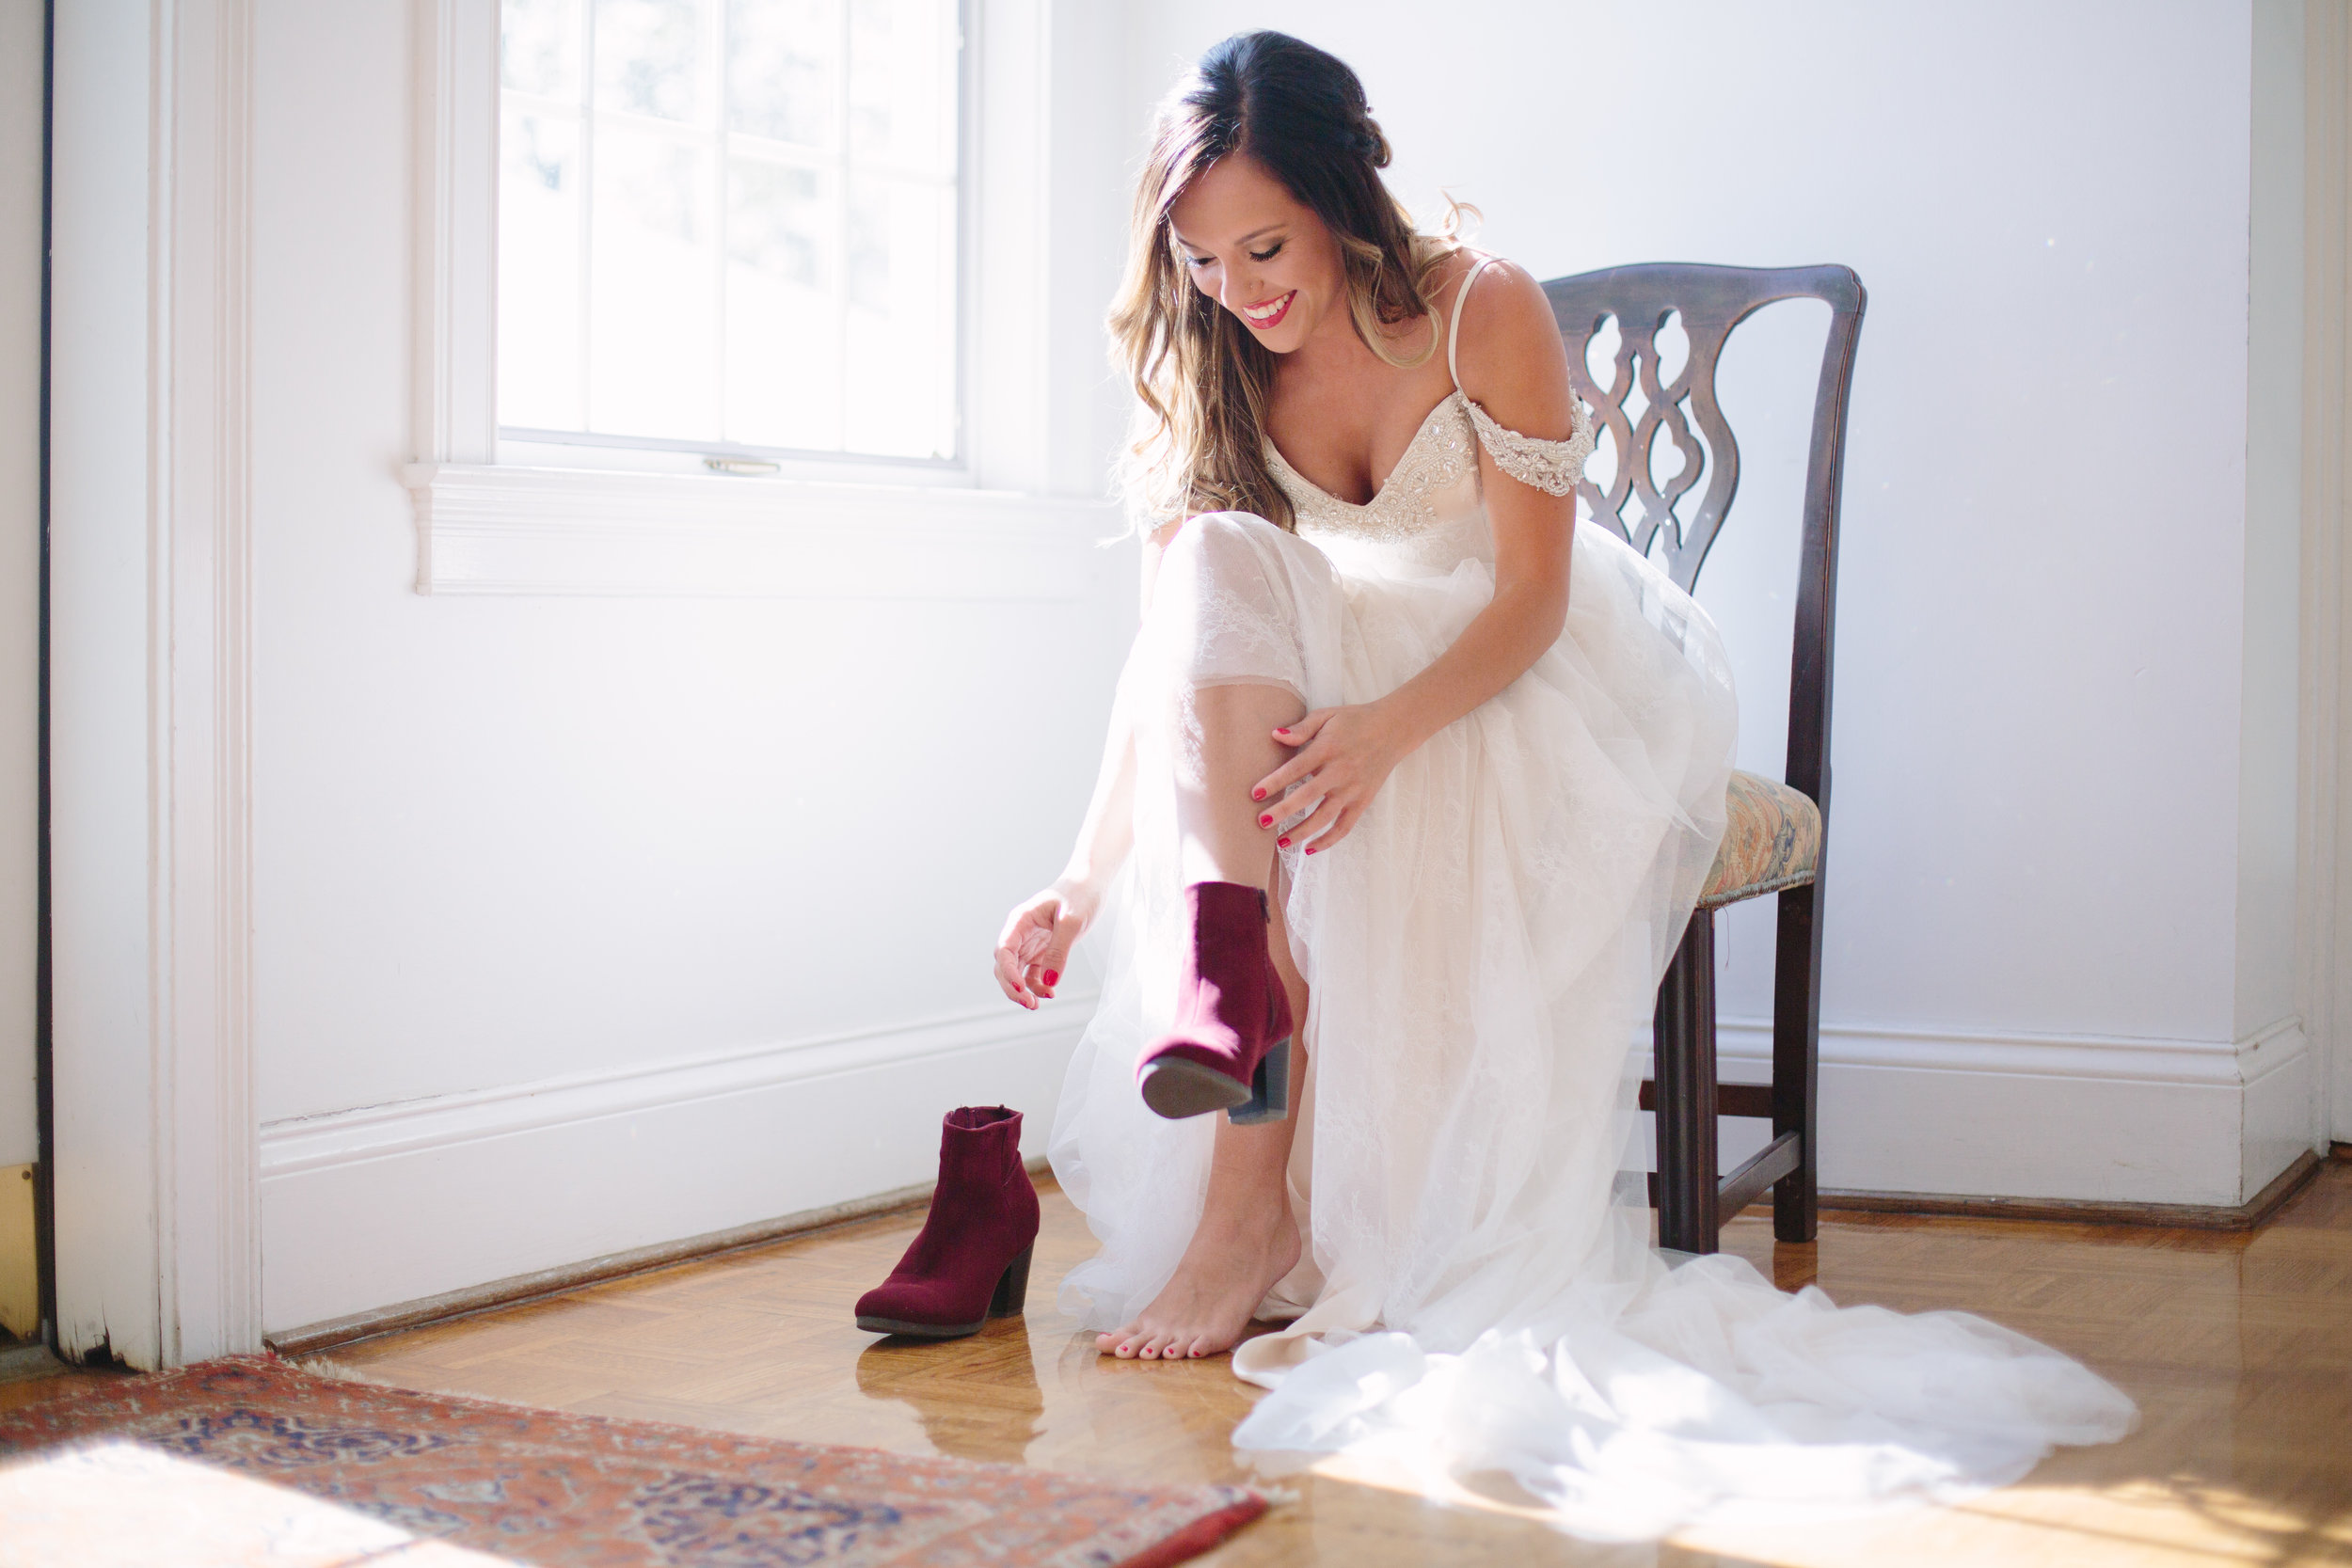 wedding, poses, outdoor, inspiration, bride, vibrant, colorful, winter, intimate, groom, light and airy, natural light, ideas, passion, unique, Knoxville, Tennessee